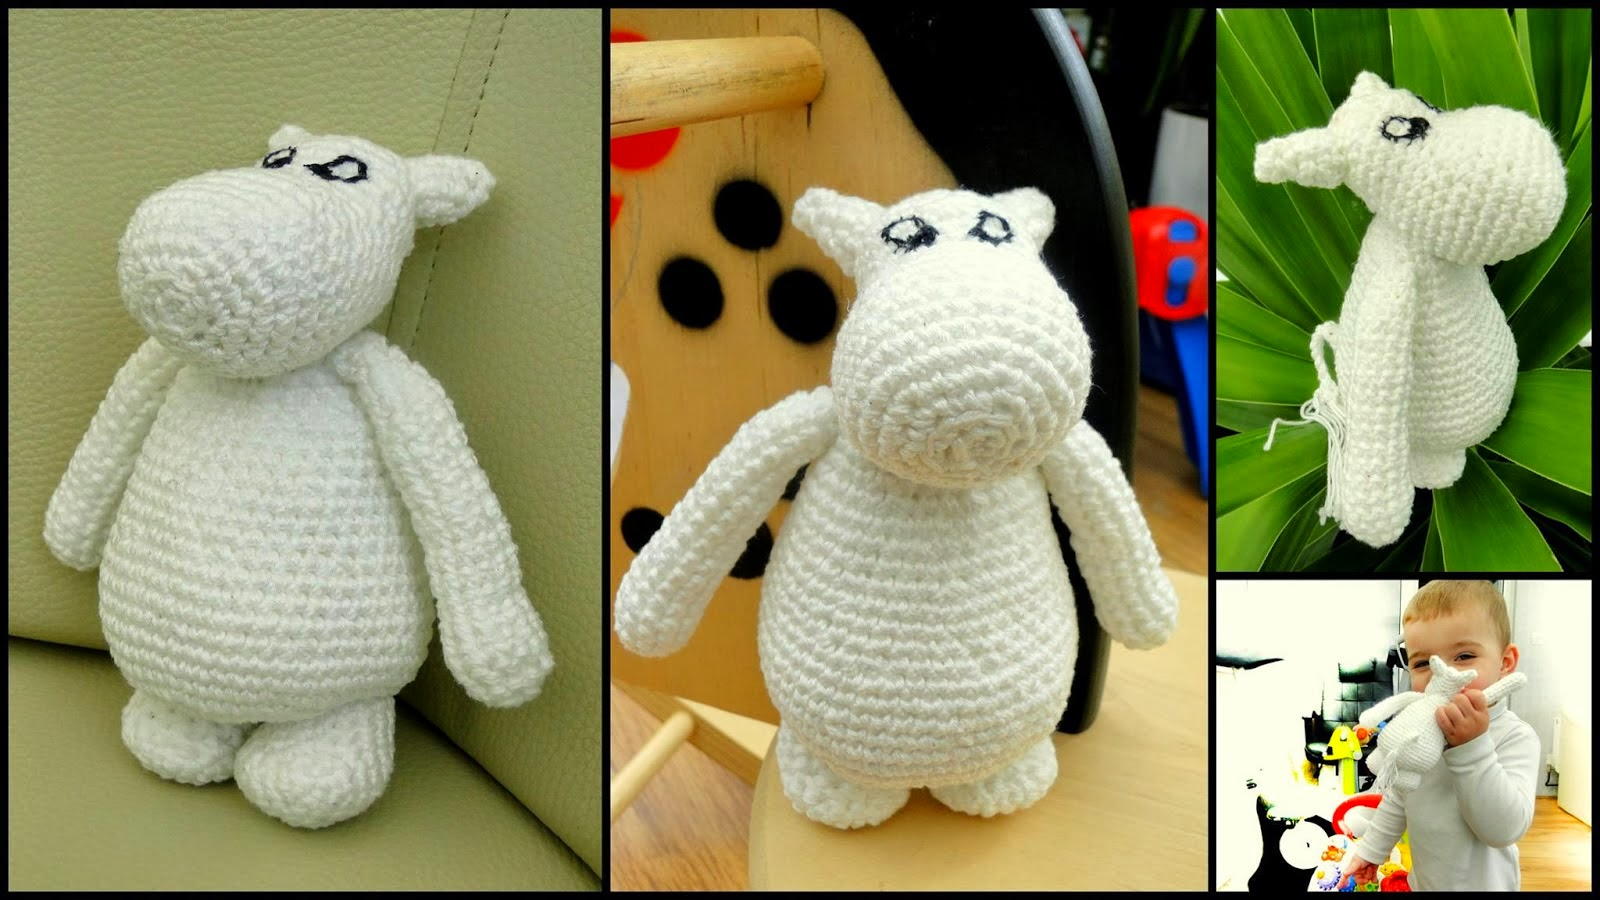 Moomin Knitting Pattern : 3 Rabbits Patterns: Free Moomin Crochet Pattern